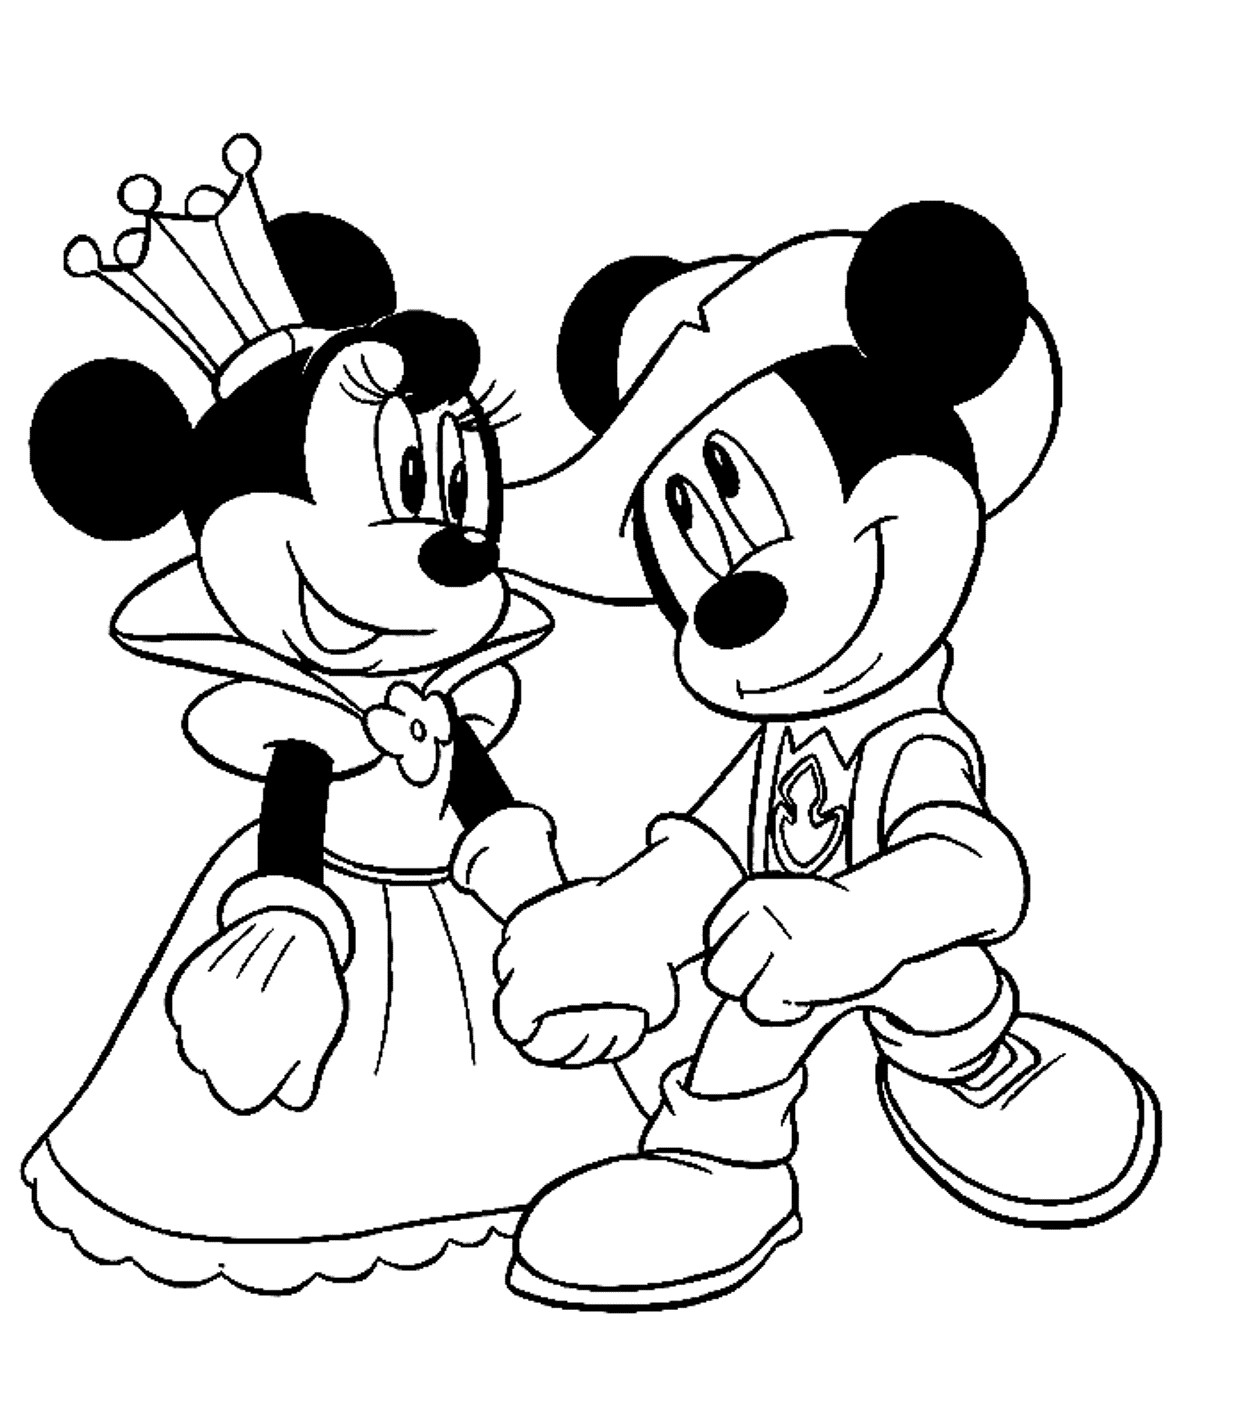 1246x1424 Mickey And Minnie Mouse Valentine Coloring Pages Best Of In Love